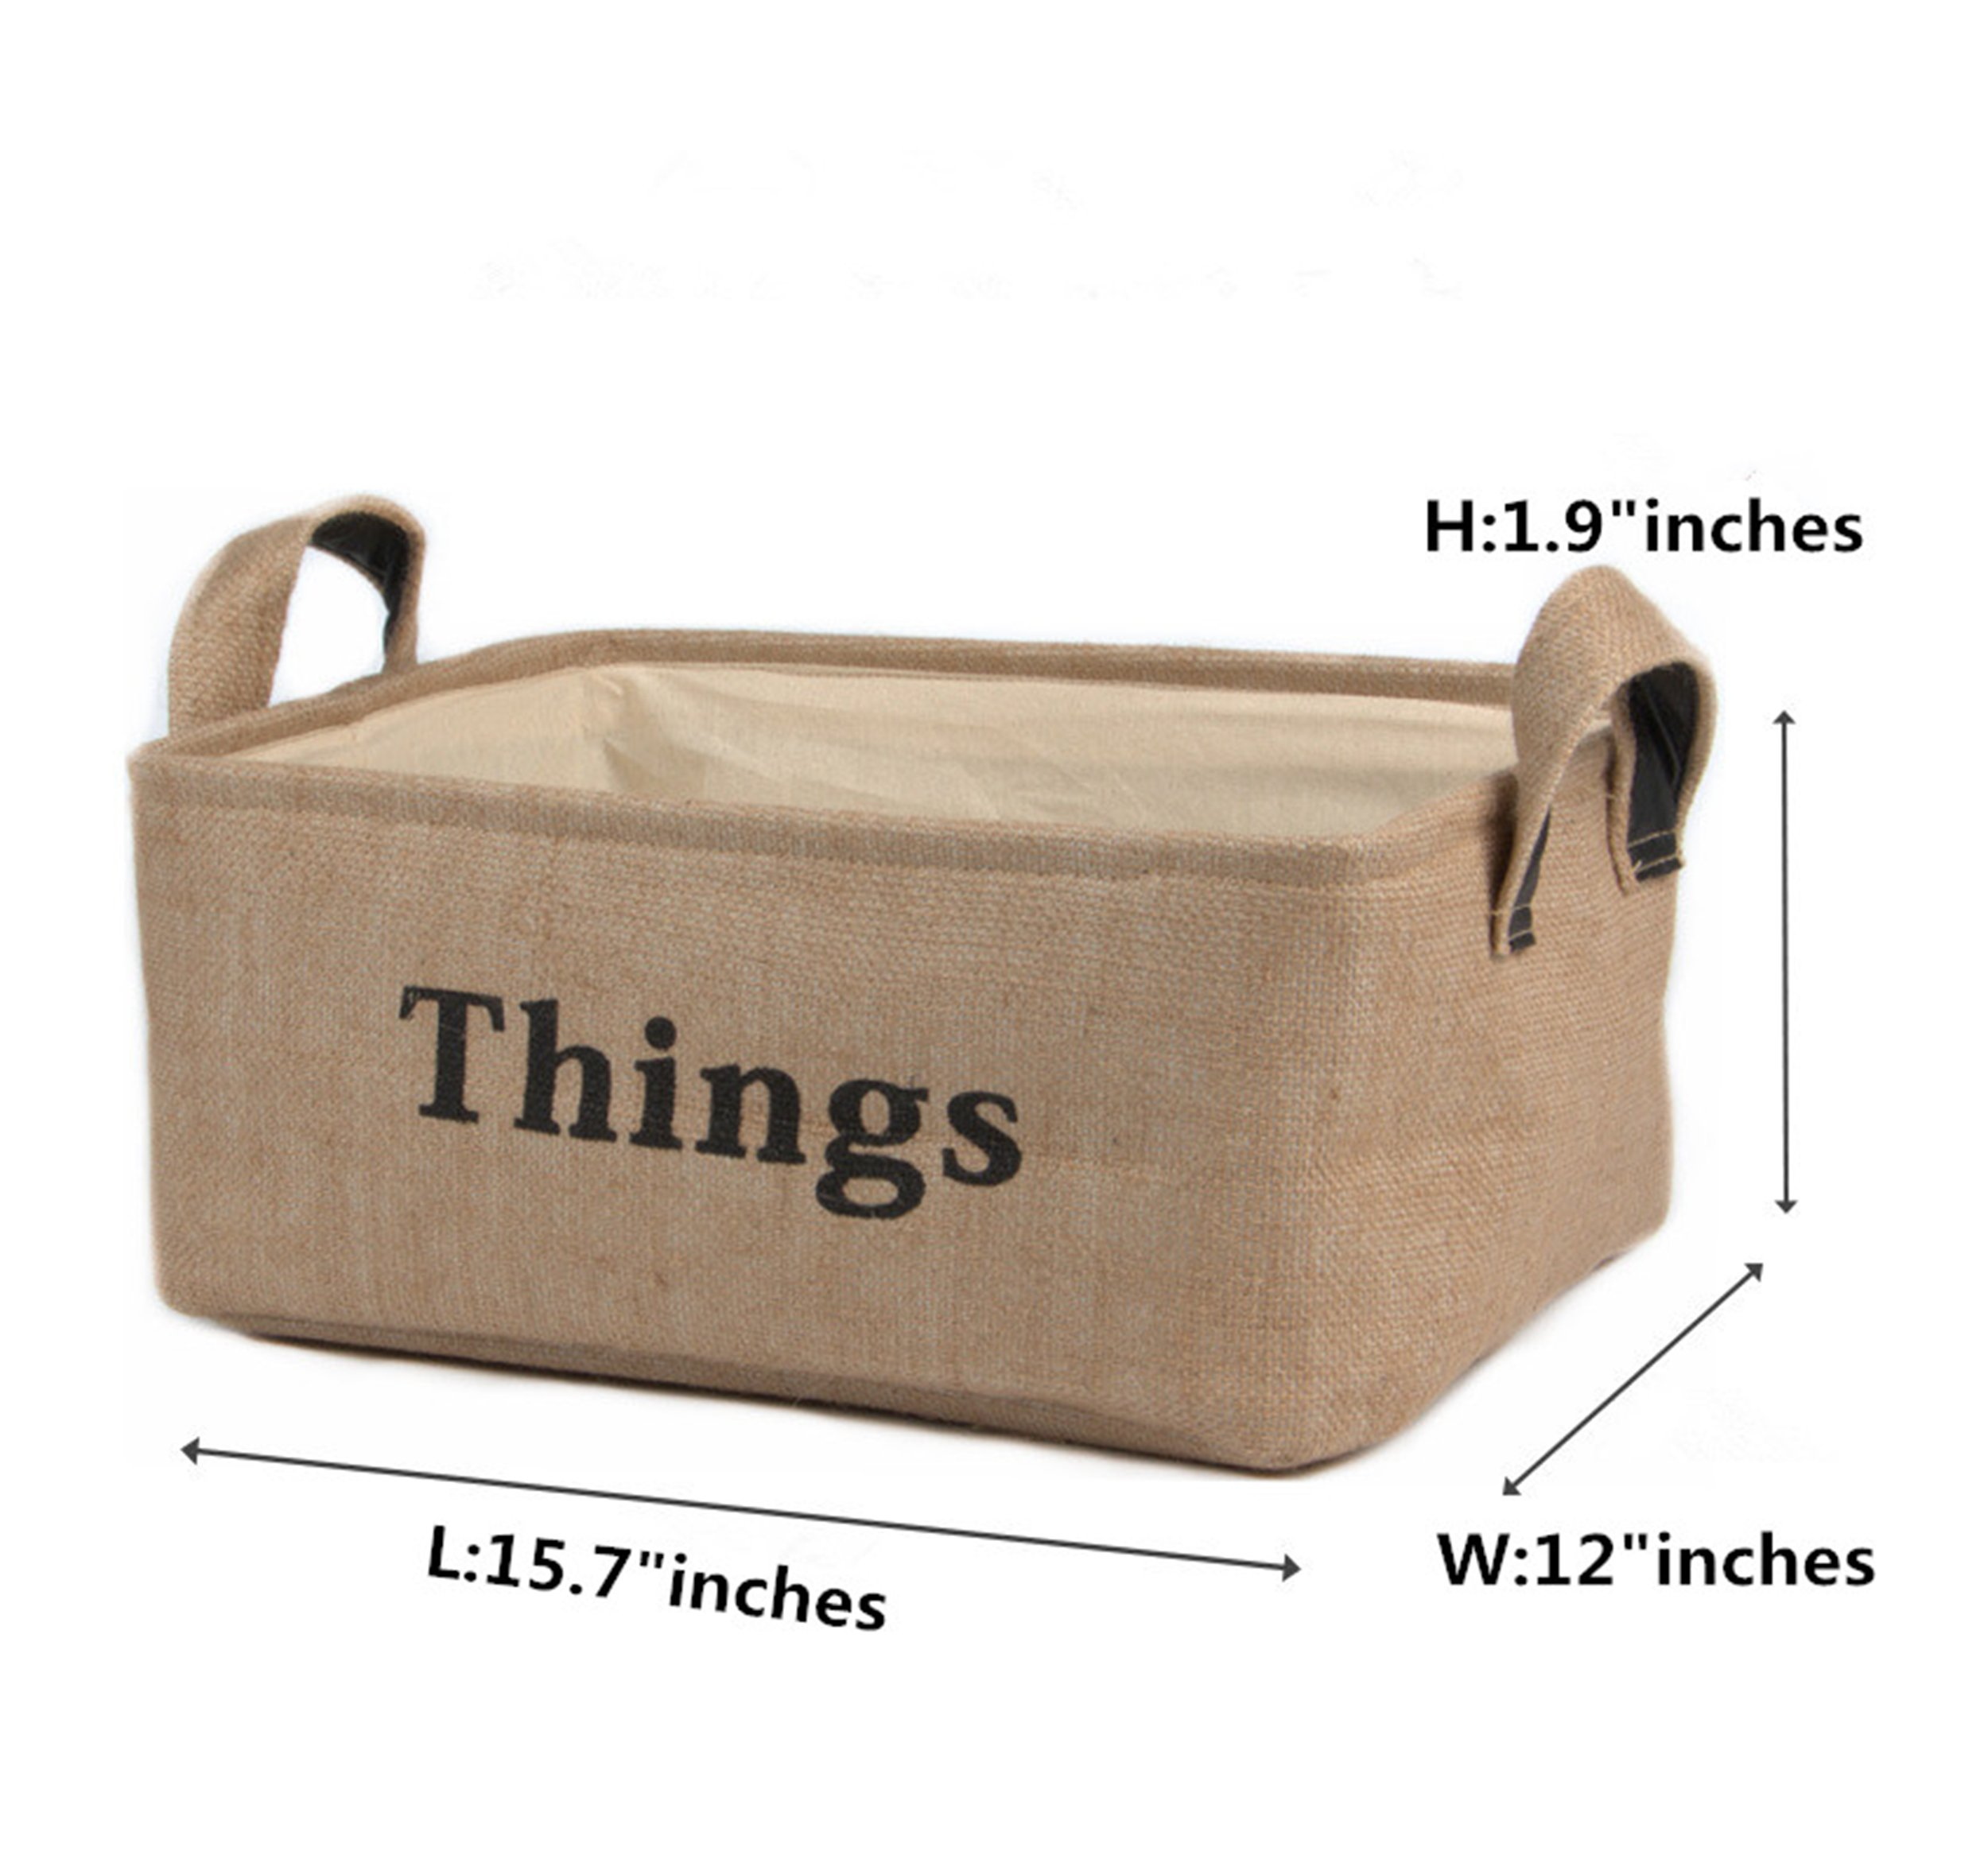 "HIYAGON Rectangle Storage Bin-Fabric Storage Baskets with Leather Handle for for Clothes Storage,Laundry,Toy Organizer,Shelf Basket,Baby Nursery(Thing) - Dimensions (each): 15.7"" (L) x 12"" (W) x 7.9"" (H) inches. Eco-friendly & durable storage bins: Made from natural durable Jute. EVA inside ORGANIZE : The storage bin provides attractive and lightweight solution to many storage needs such as Clothing Storage (especially for underwear, socks, bra, etc.), Home Textiles Storage, Toy Storage, Baby Product's Storage and Pet Product's Storage. - living-room-decor, living-room, baskets-storage - 81RT5Z866CL -"